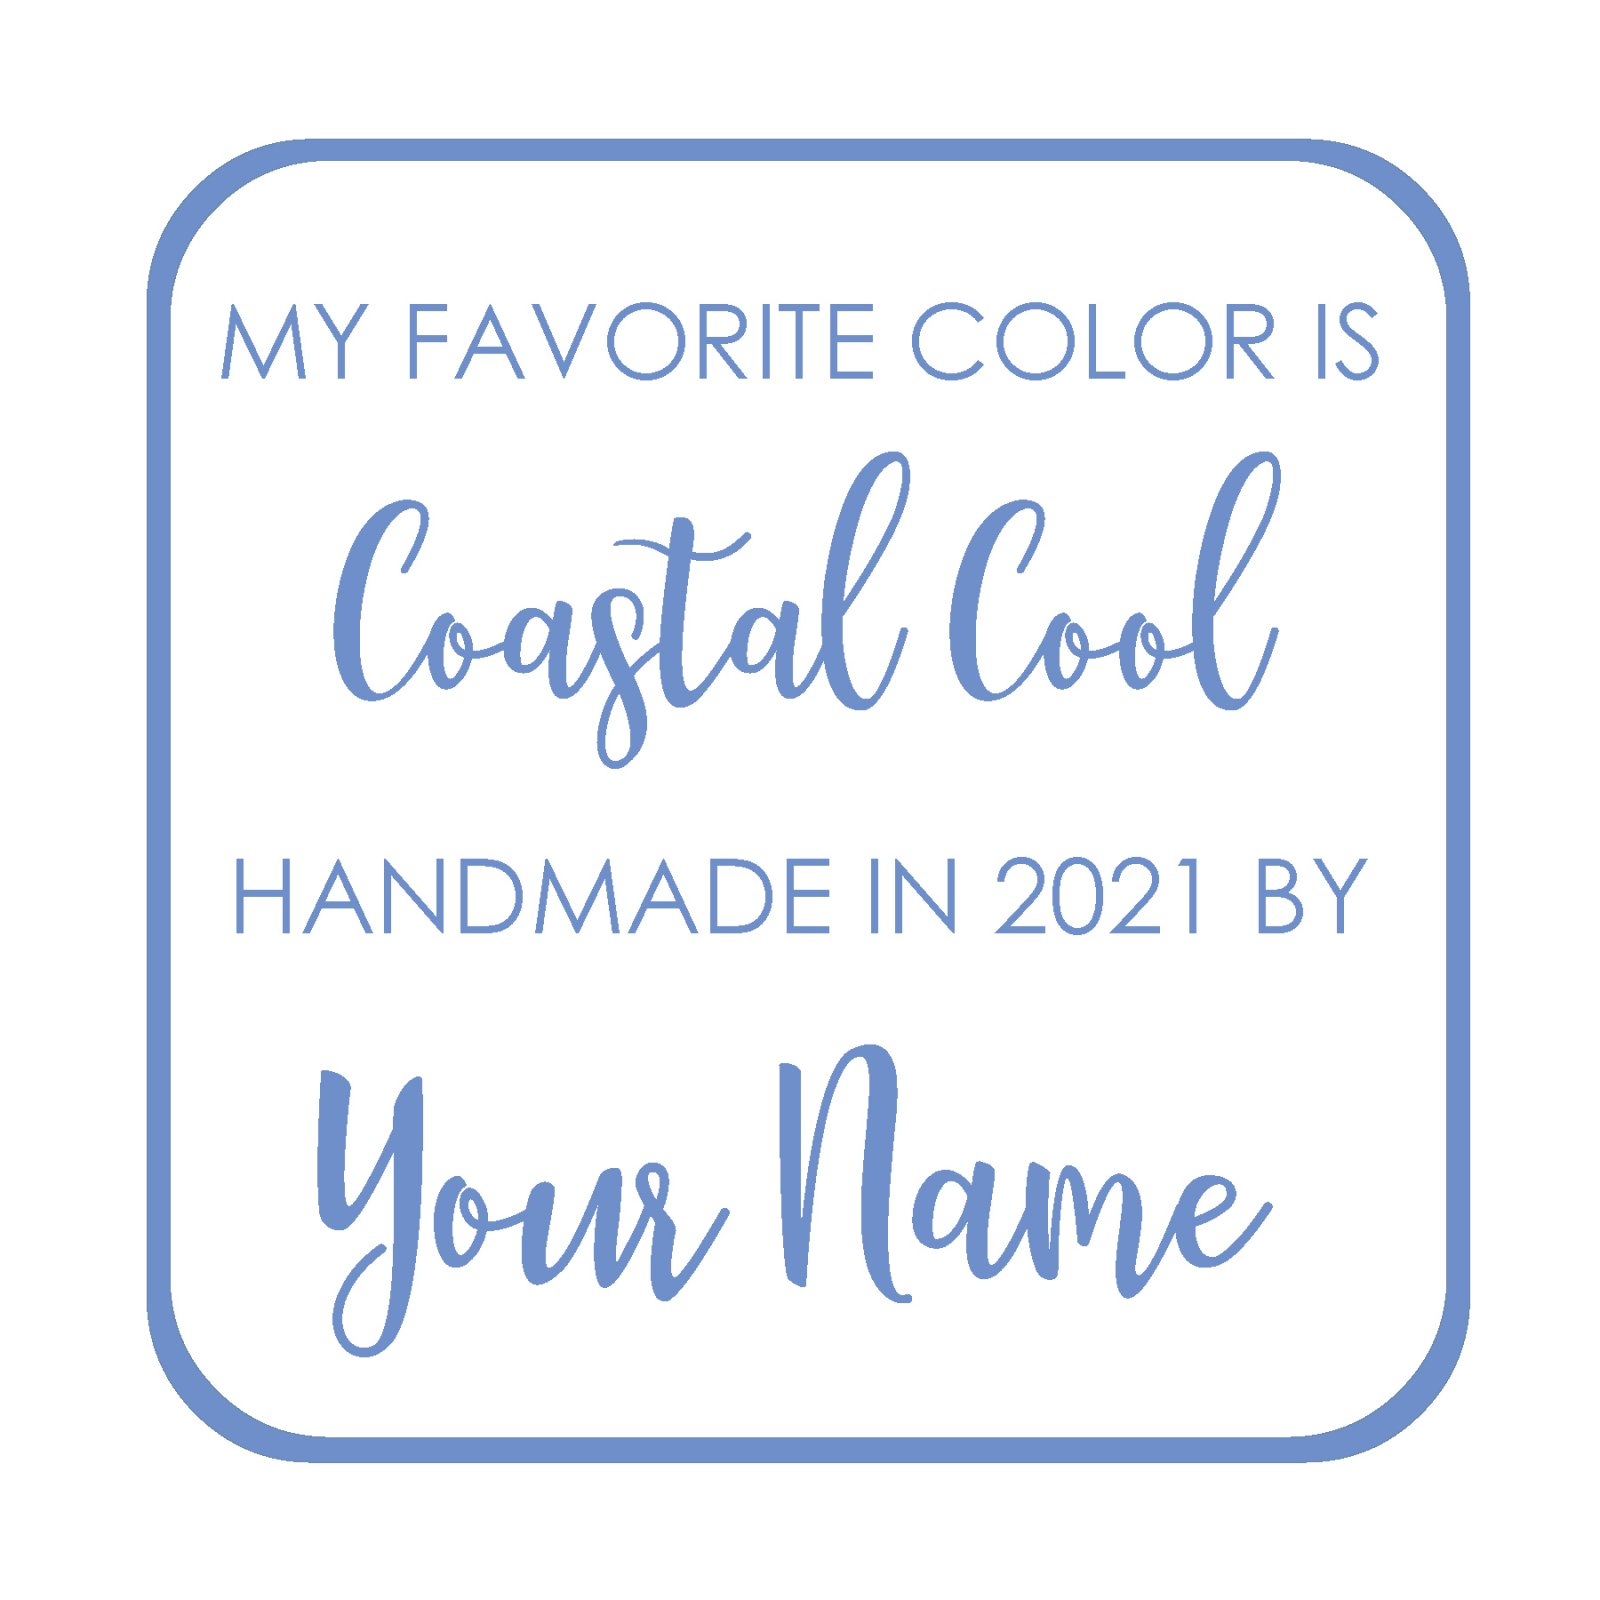 Coastal Cool Custom Label - My Favorite Color is Moda BOM